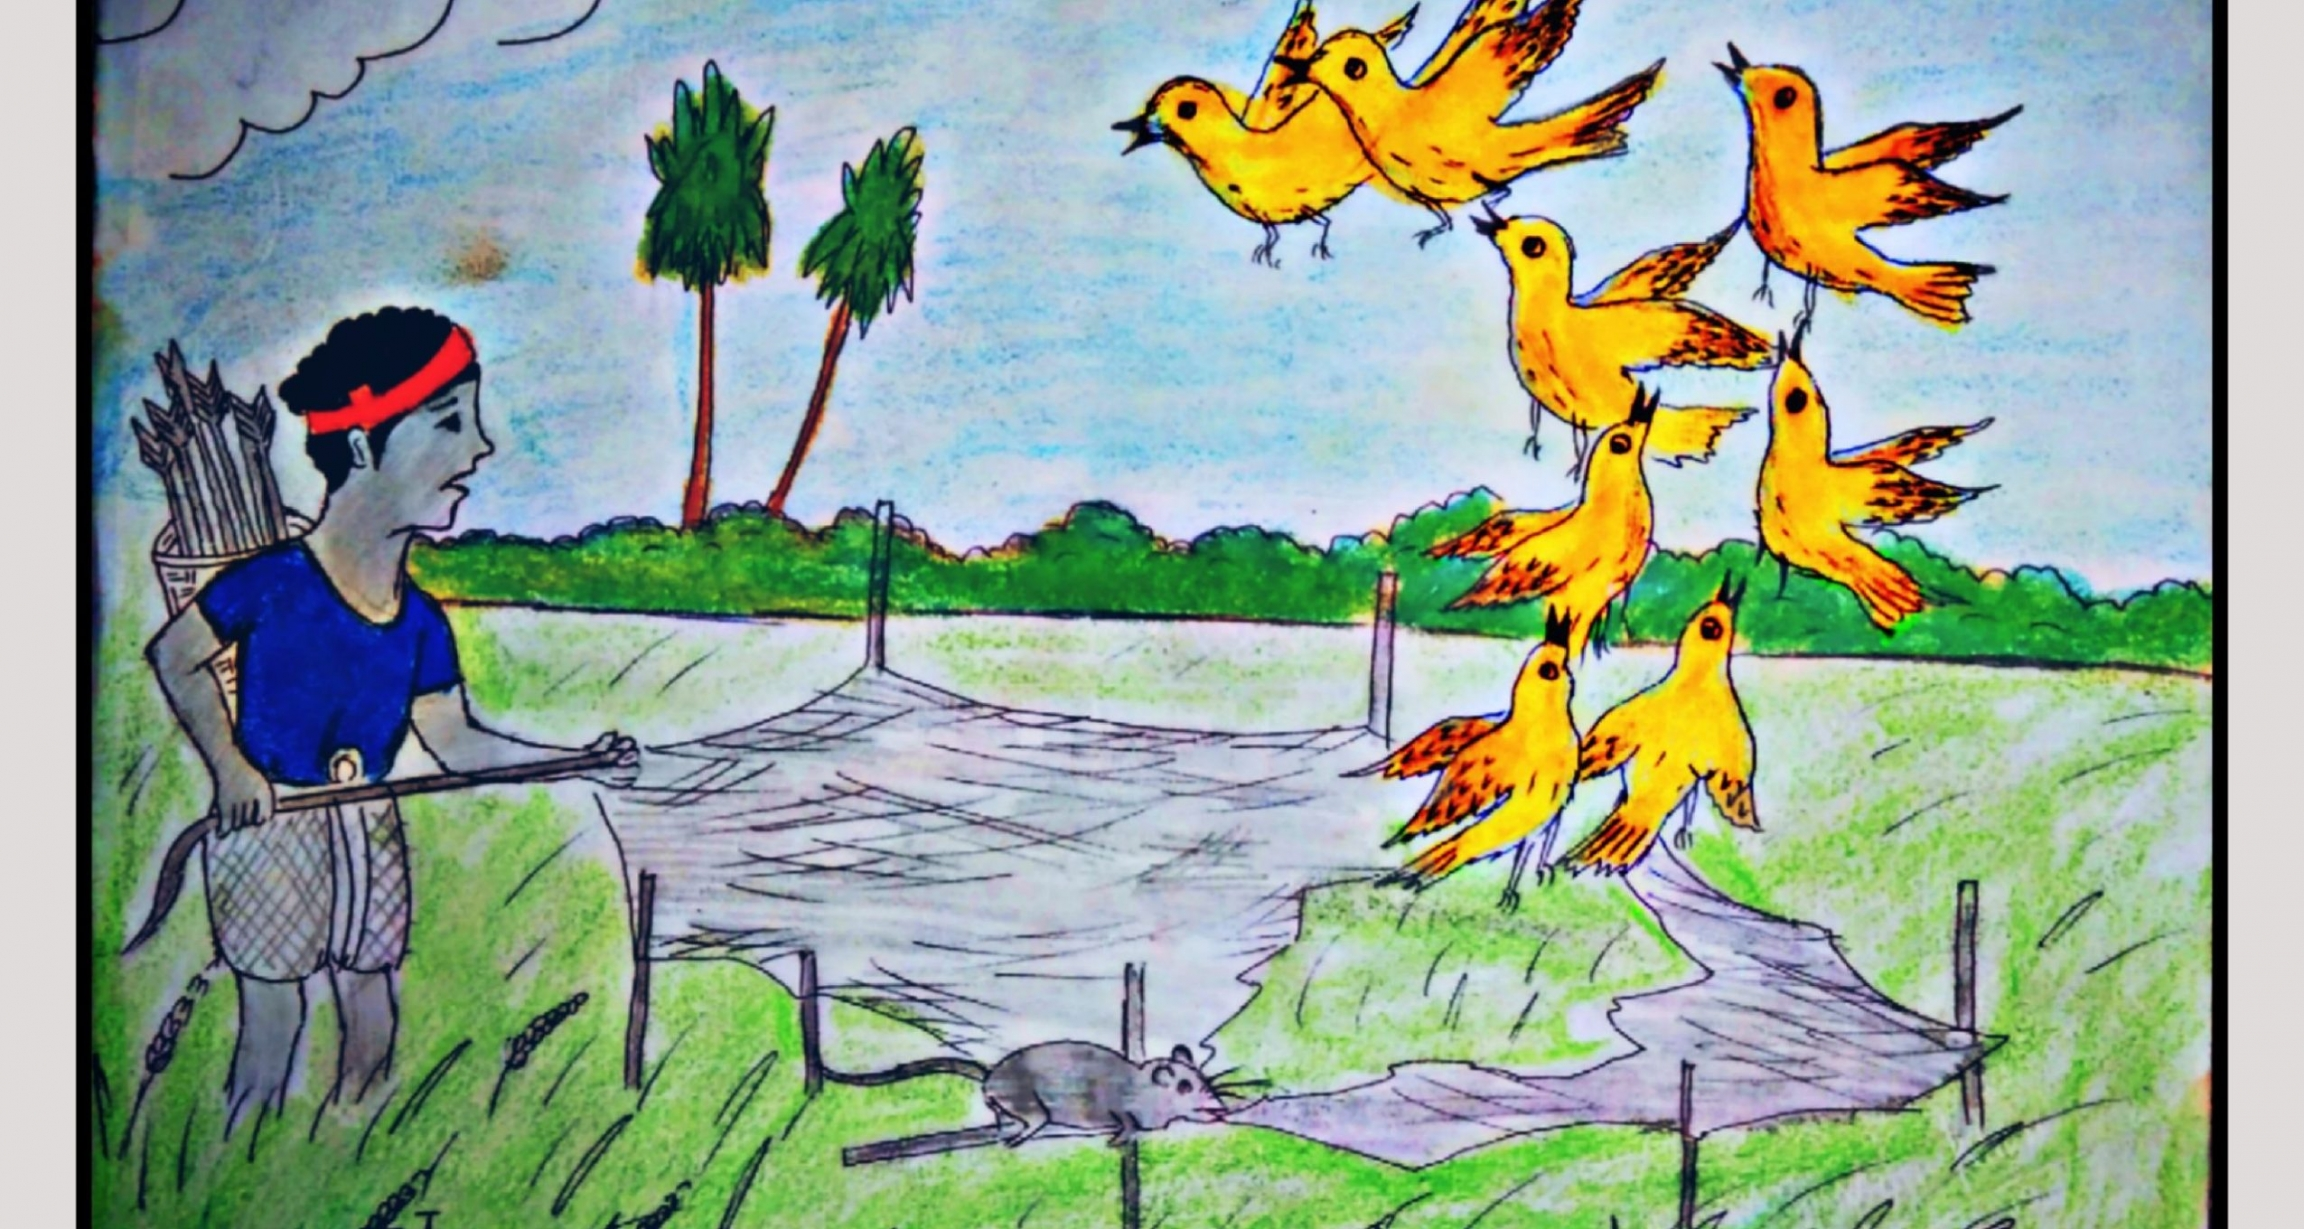 A drawing of a man and a group of yellow birds.